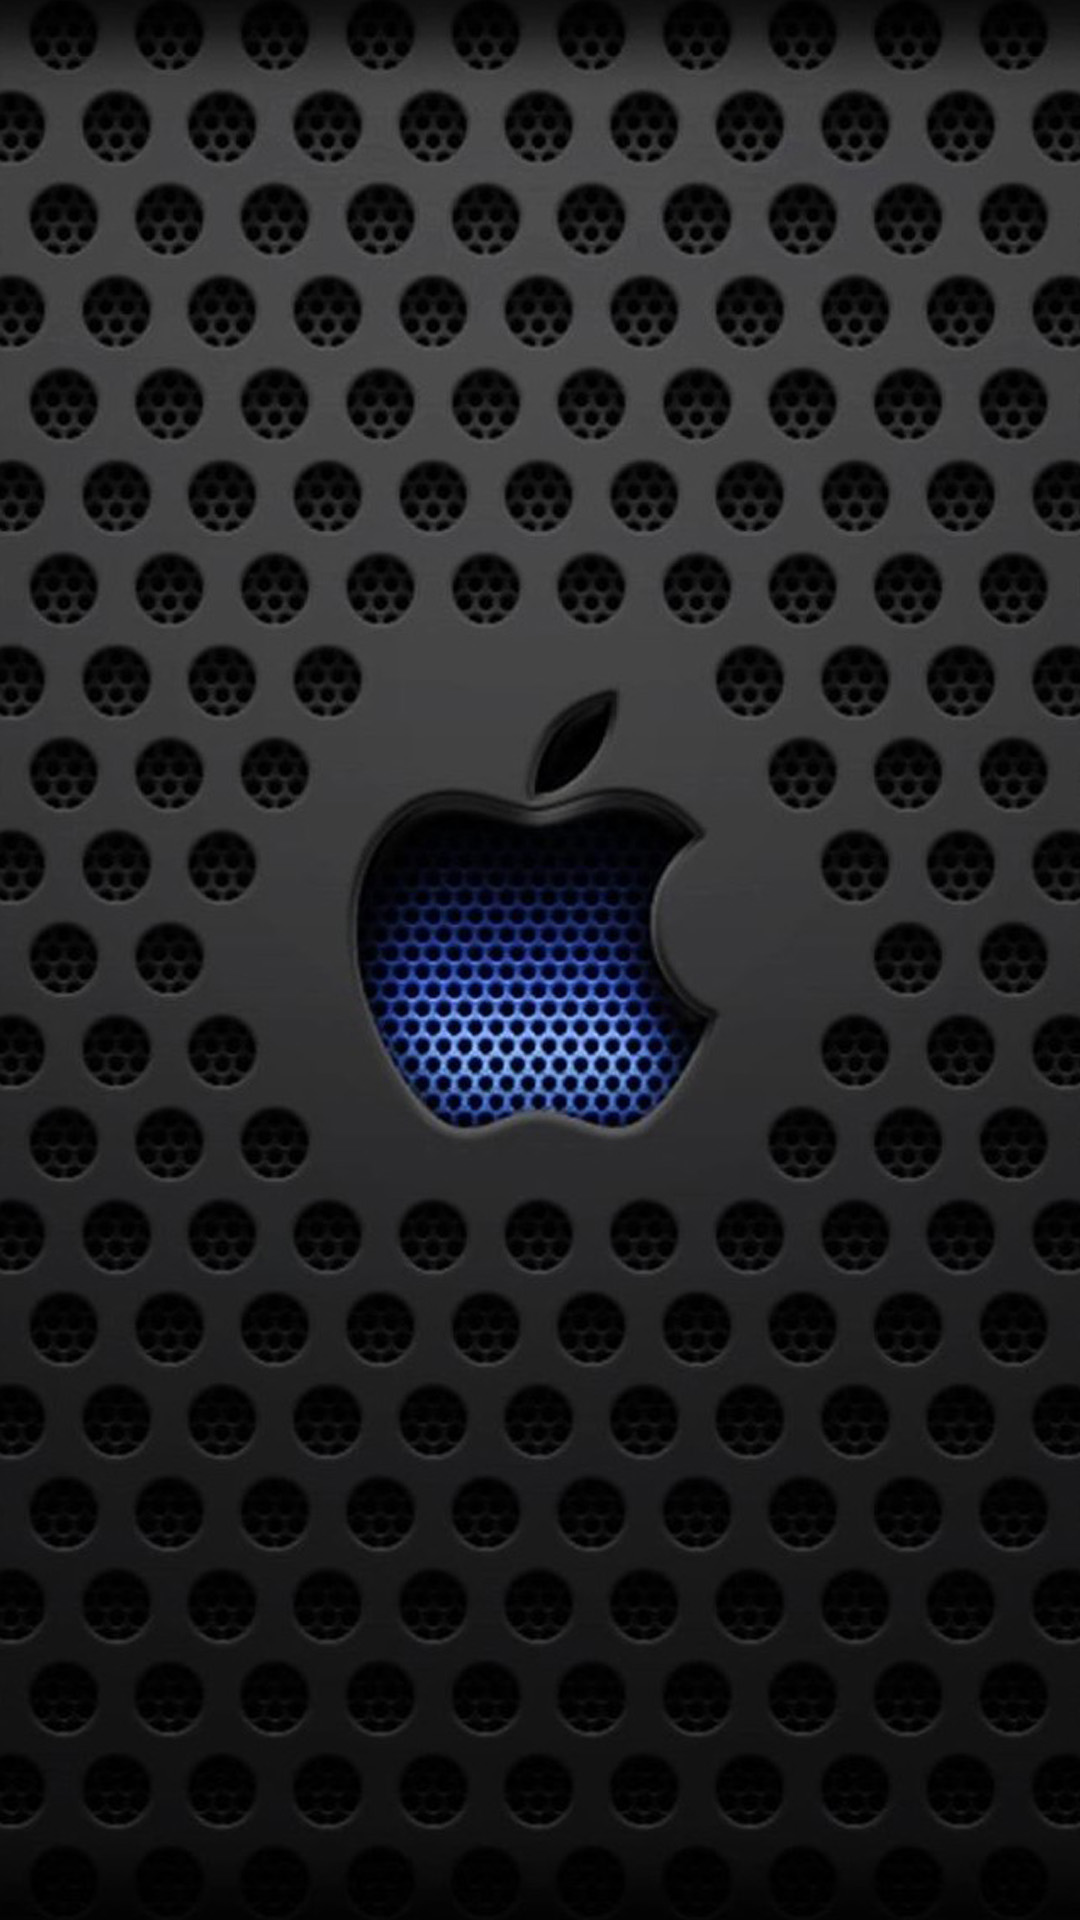 apple iphone 6 iphone 6 plus wallpapers best Car Pictures 1080x1920